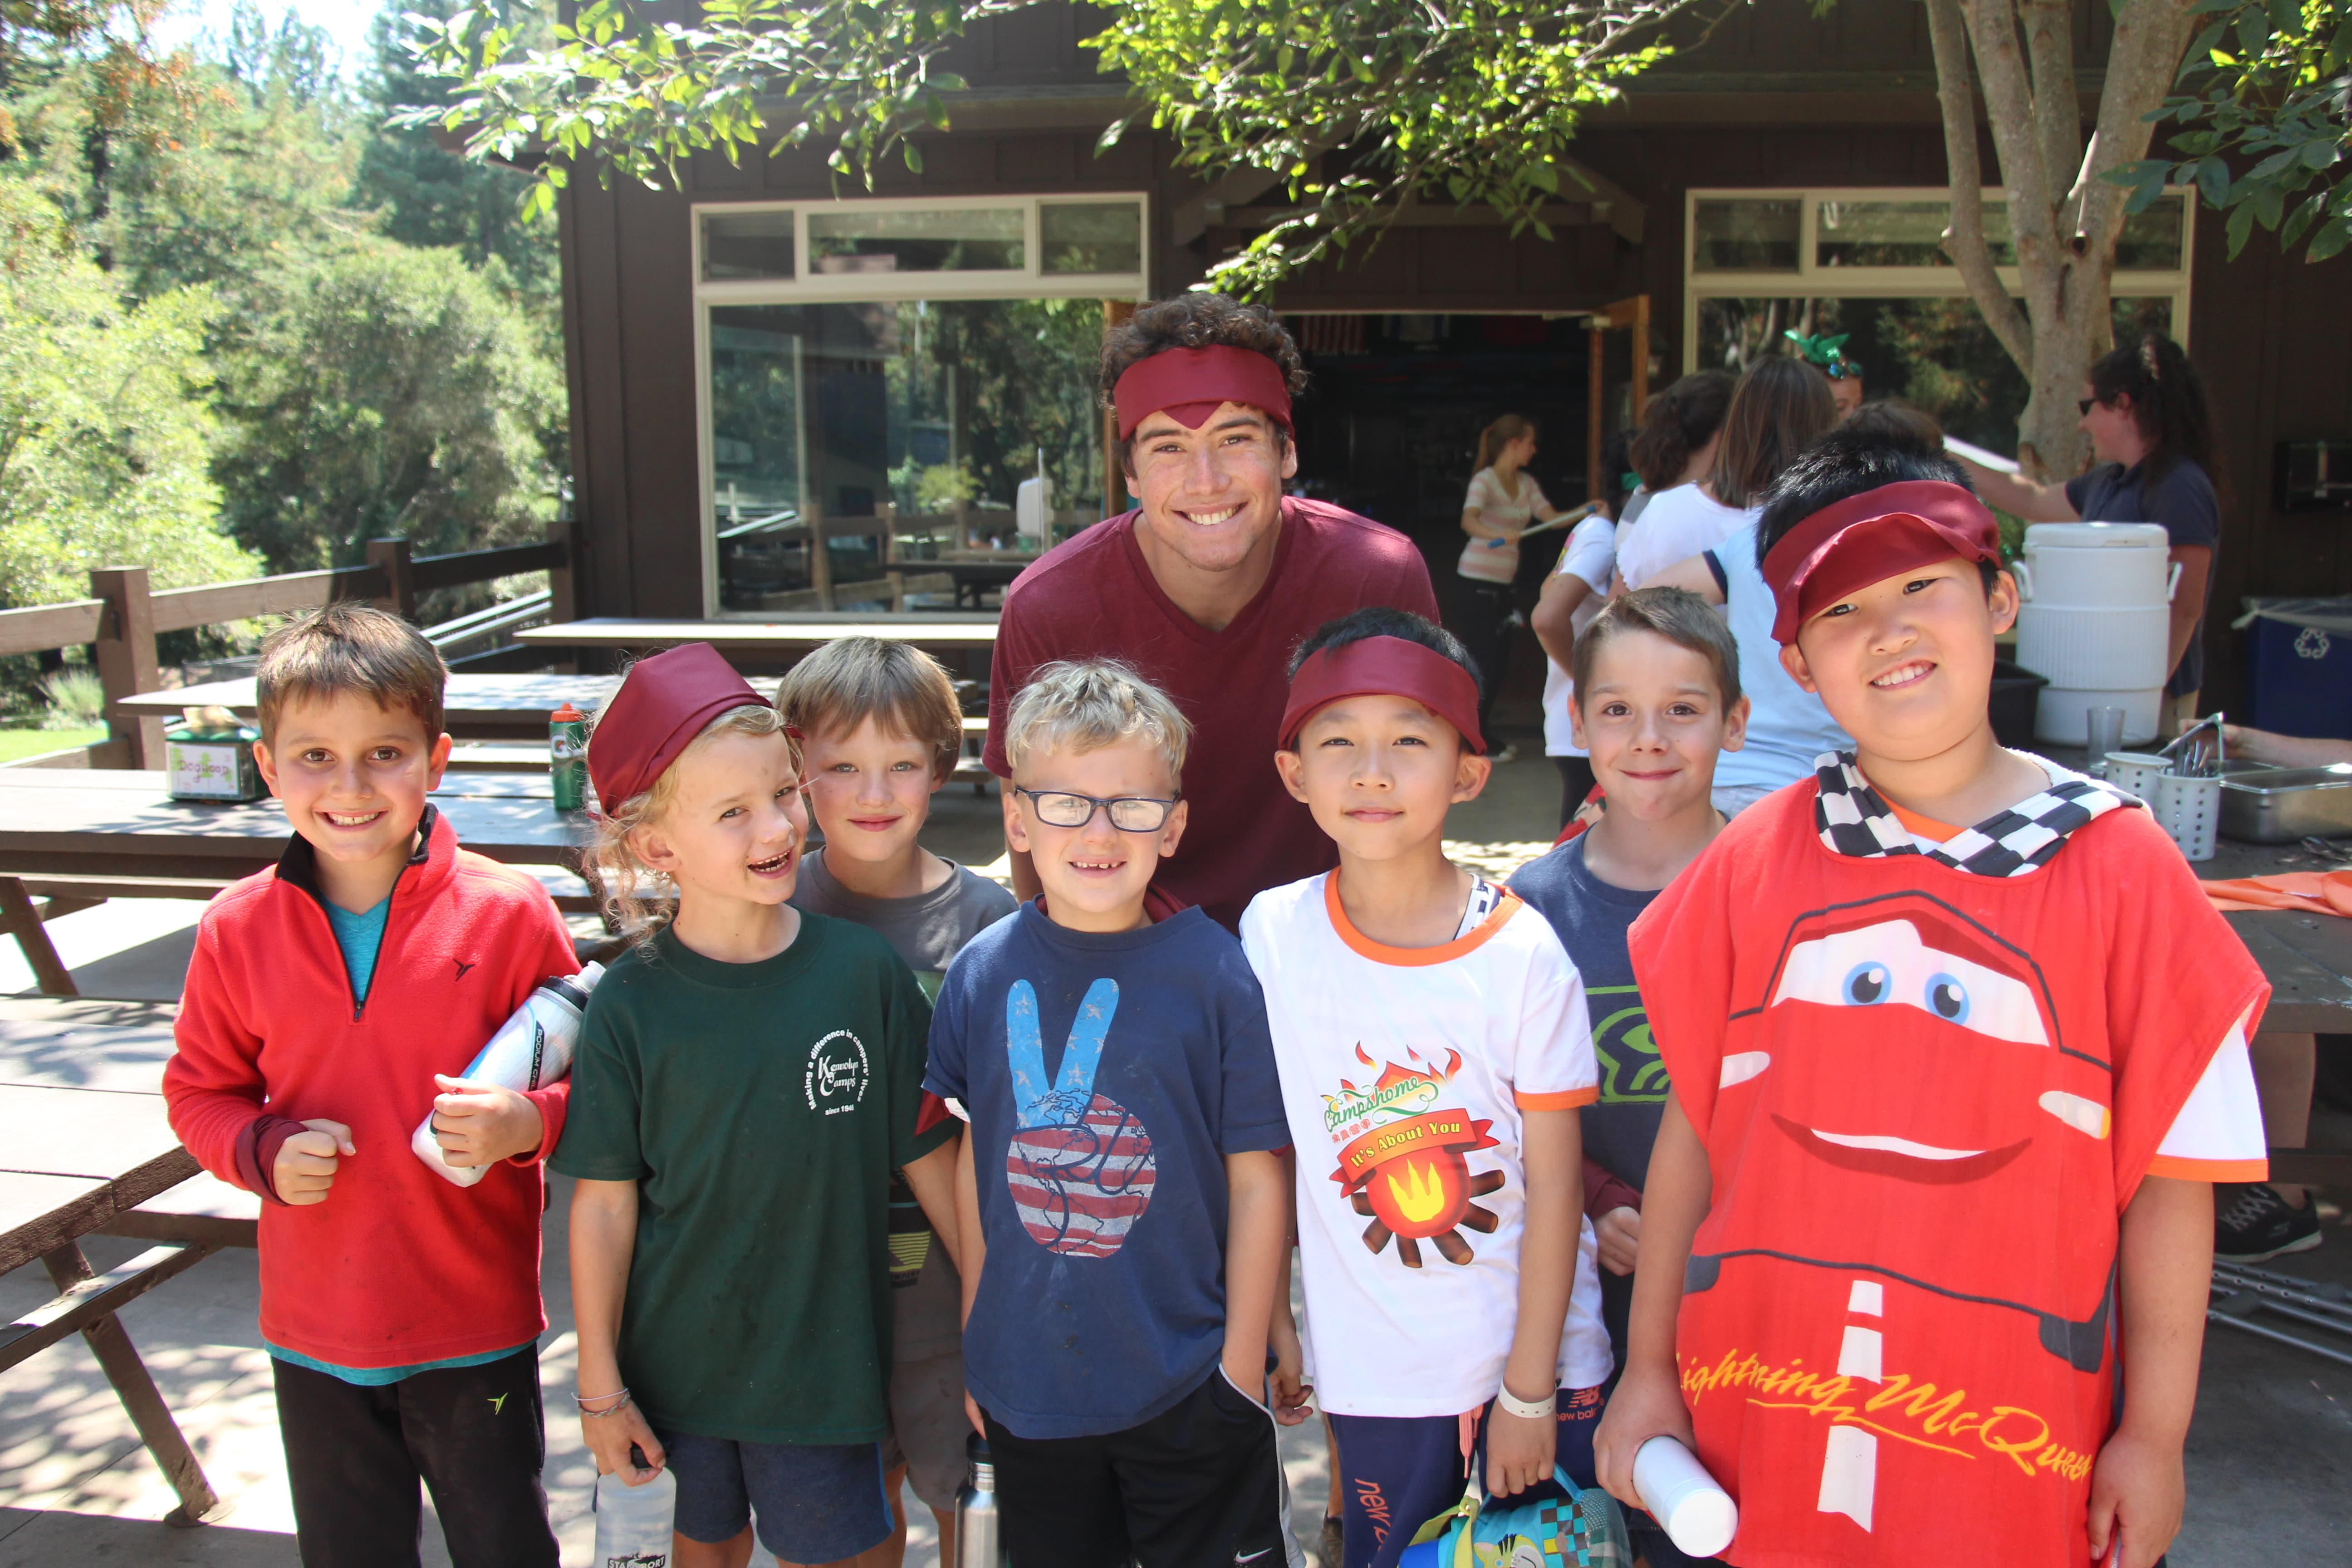 A counselor with a group of campers wearing maroon bandanas